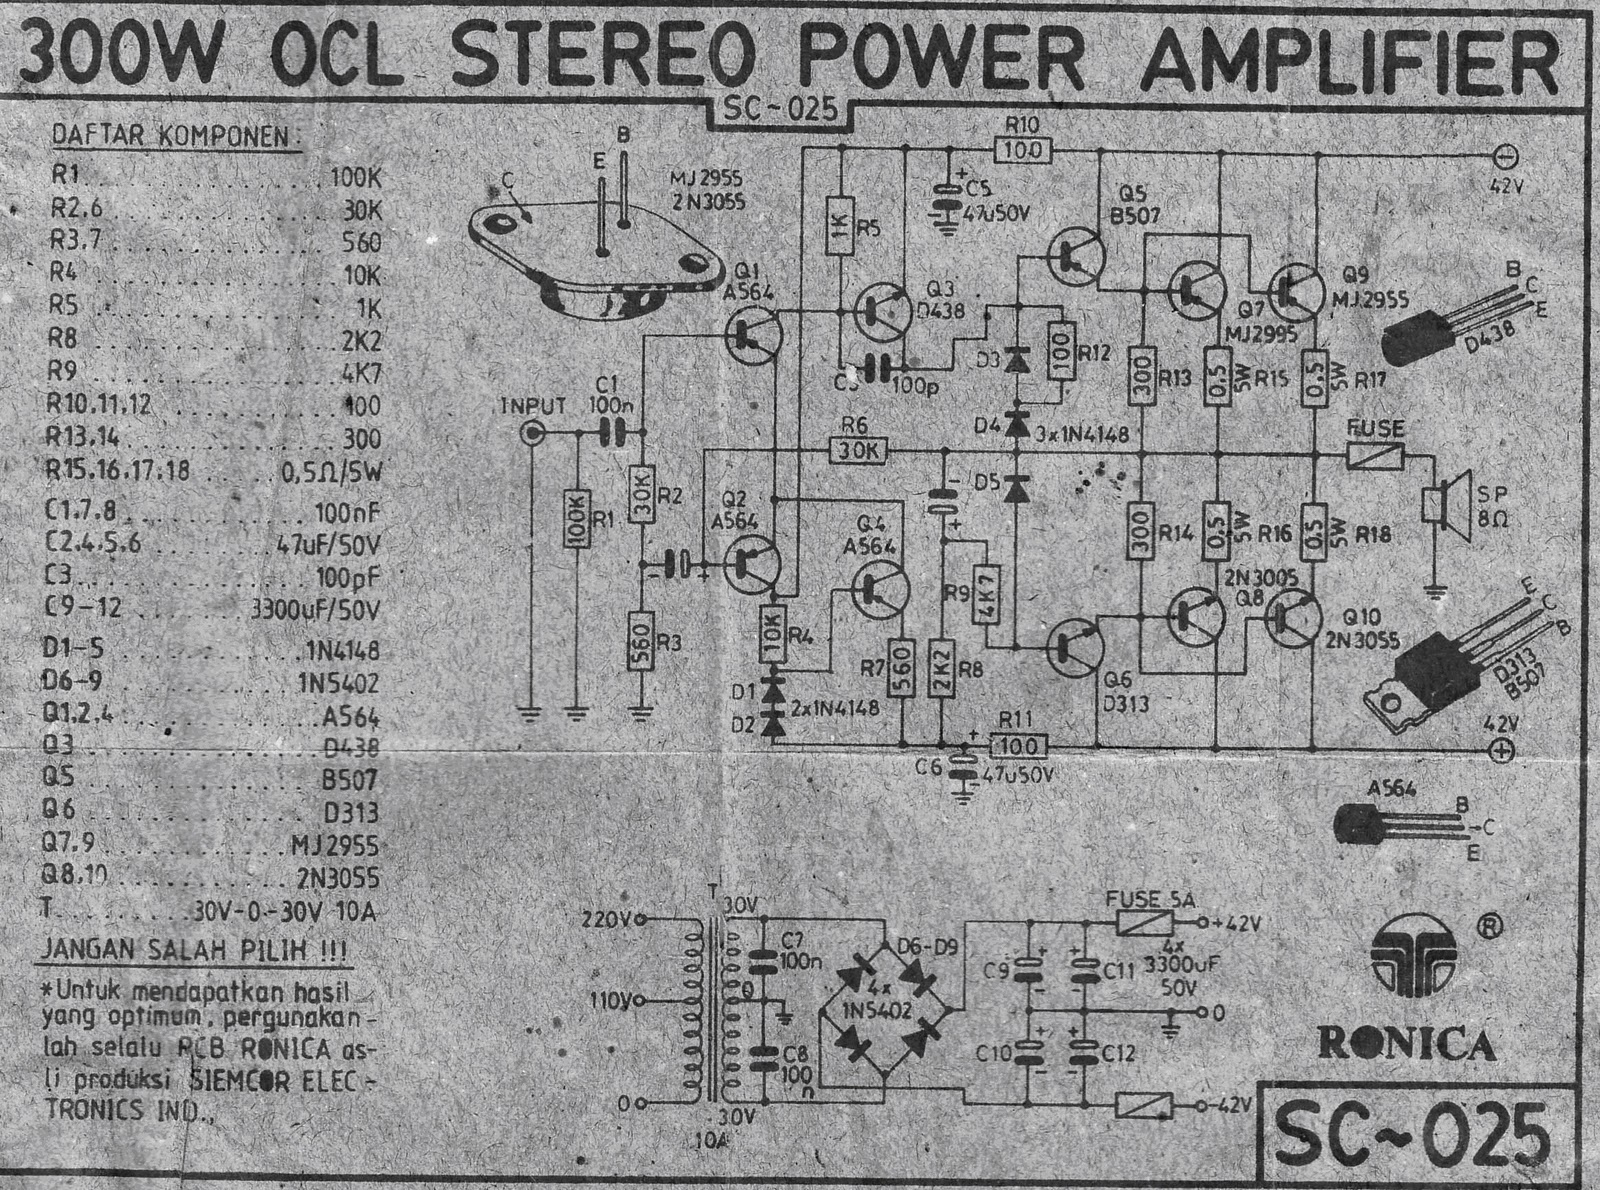 Indonesia's Legendary DIY Power Amplifier (150W OCL Amplifier)